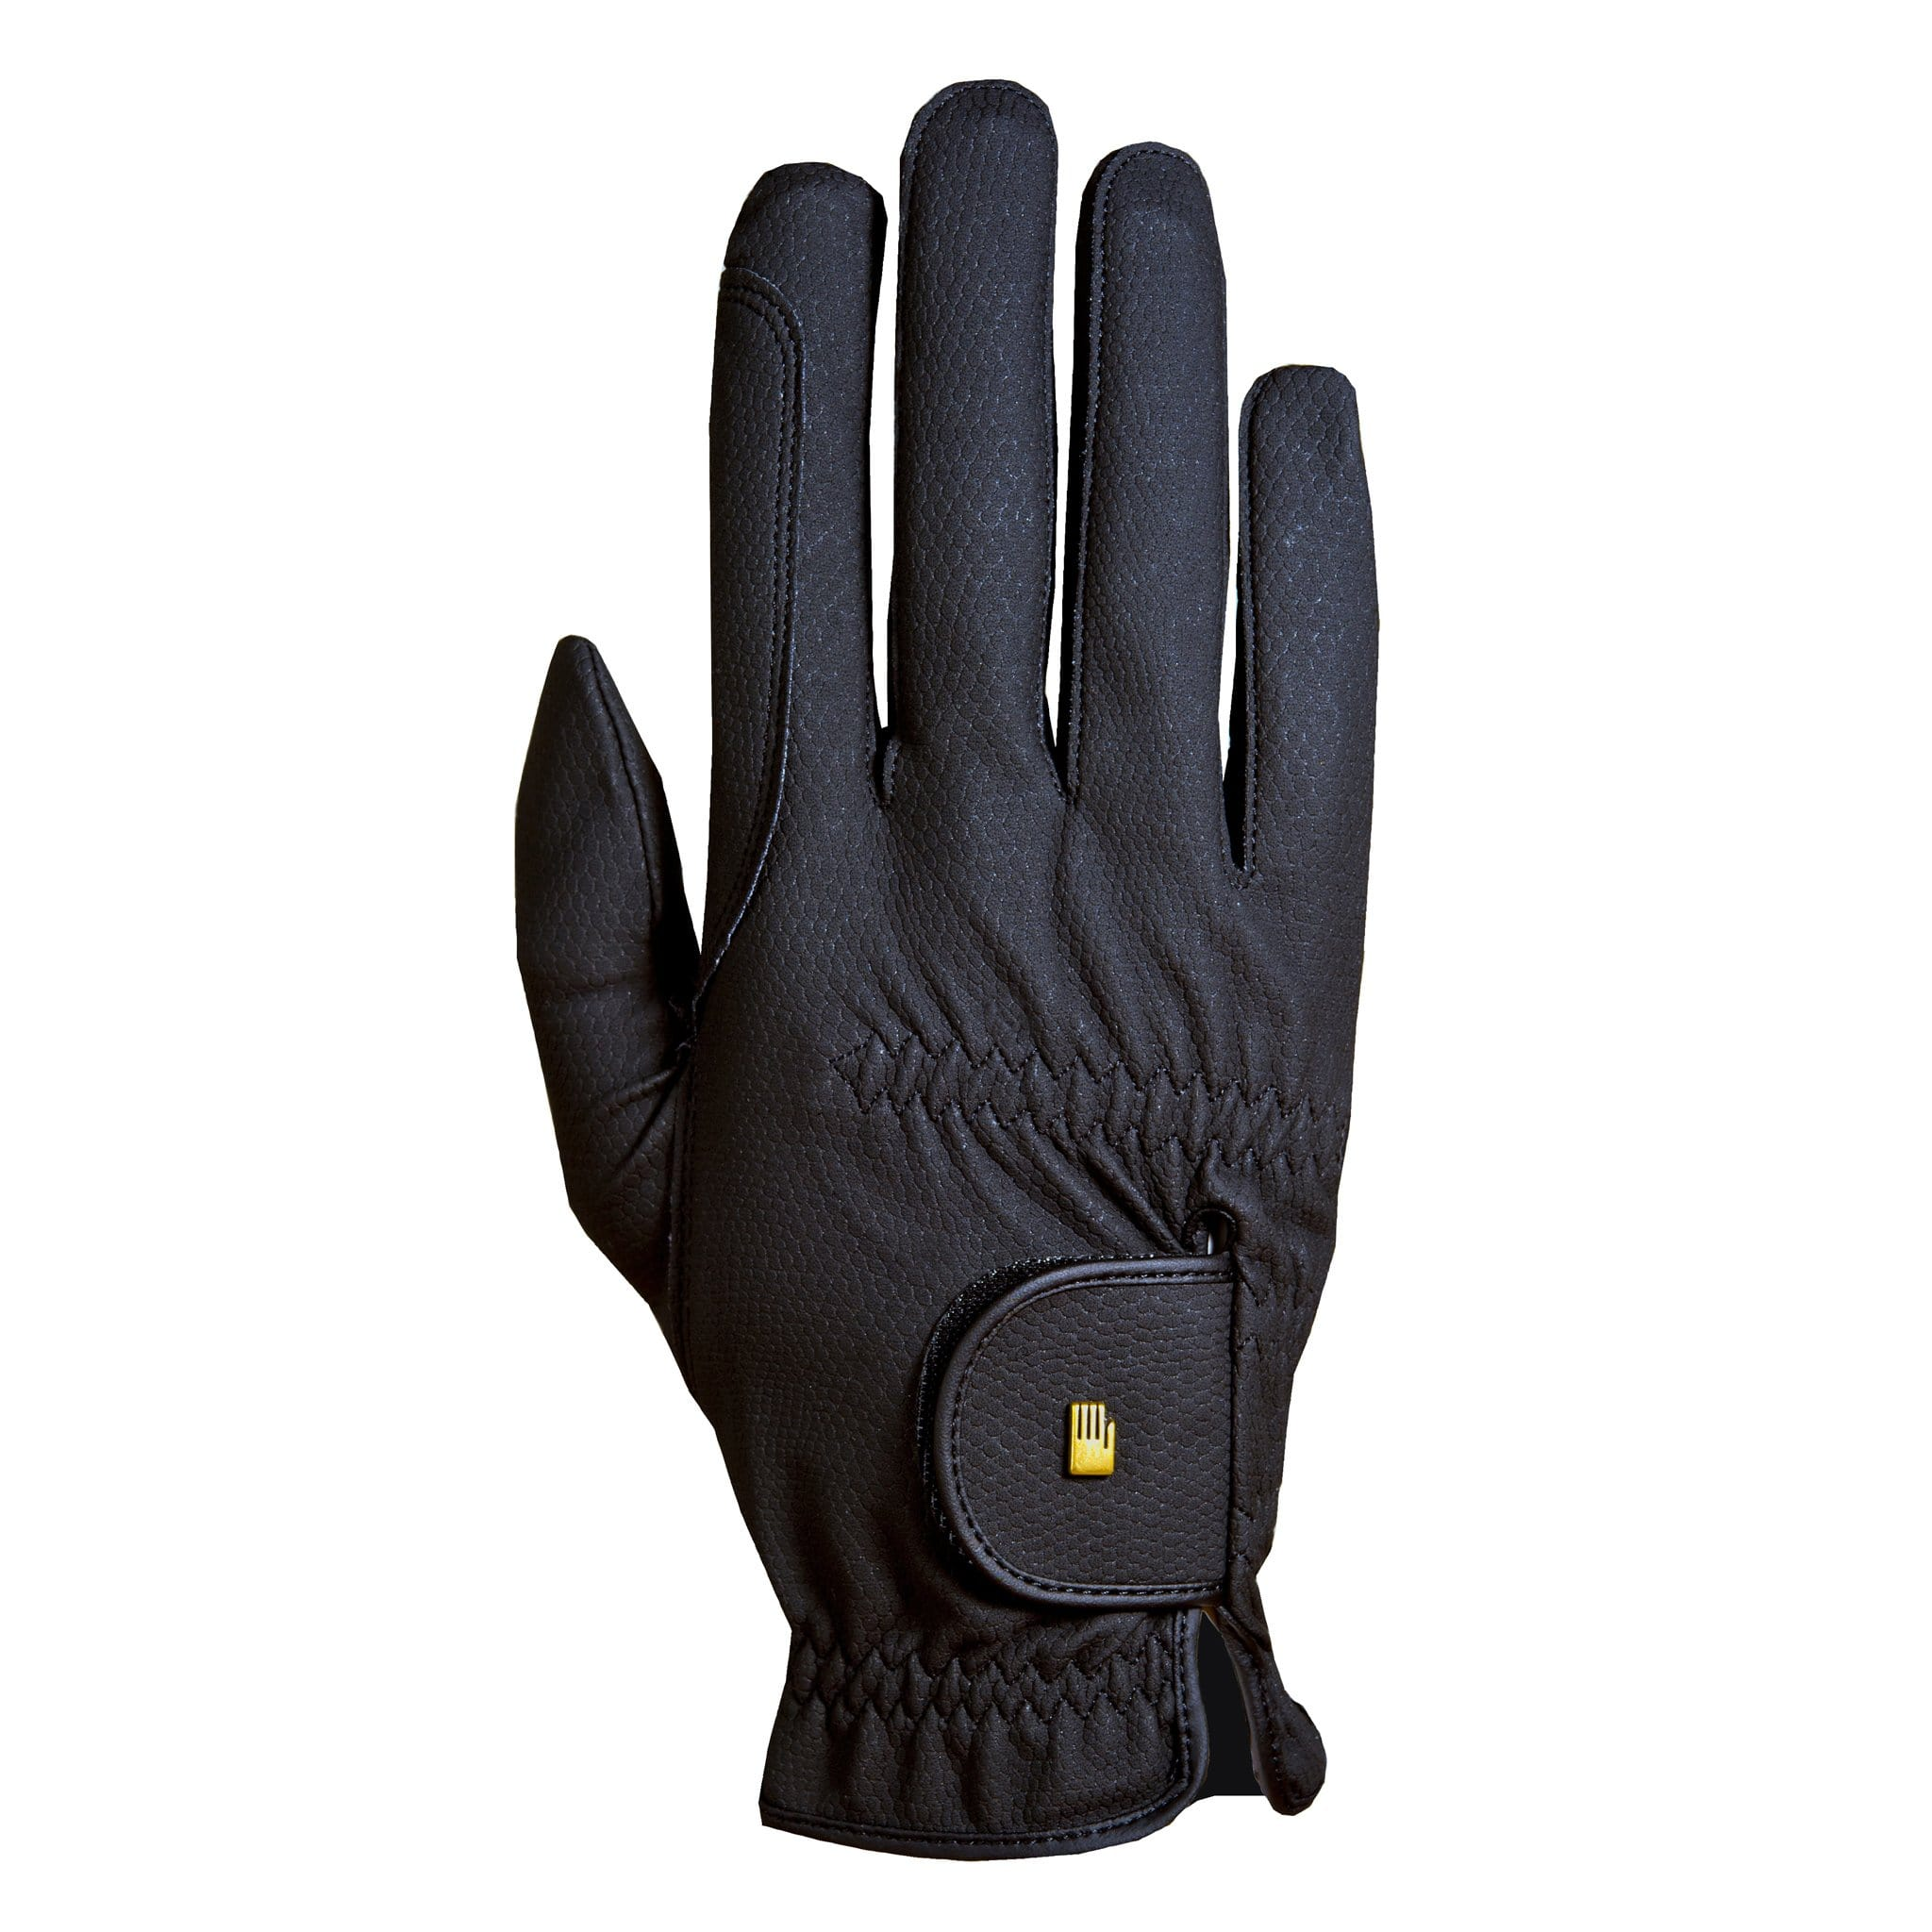 Roeckl Chester Children's Winter Gloves Black 3305-527-000